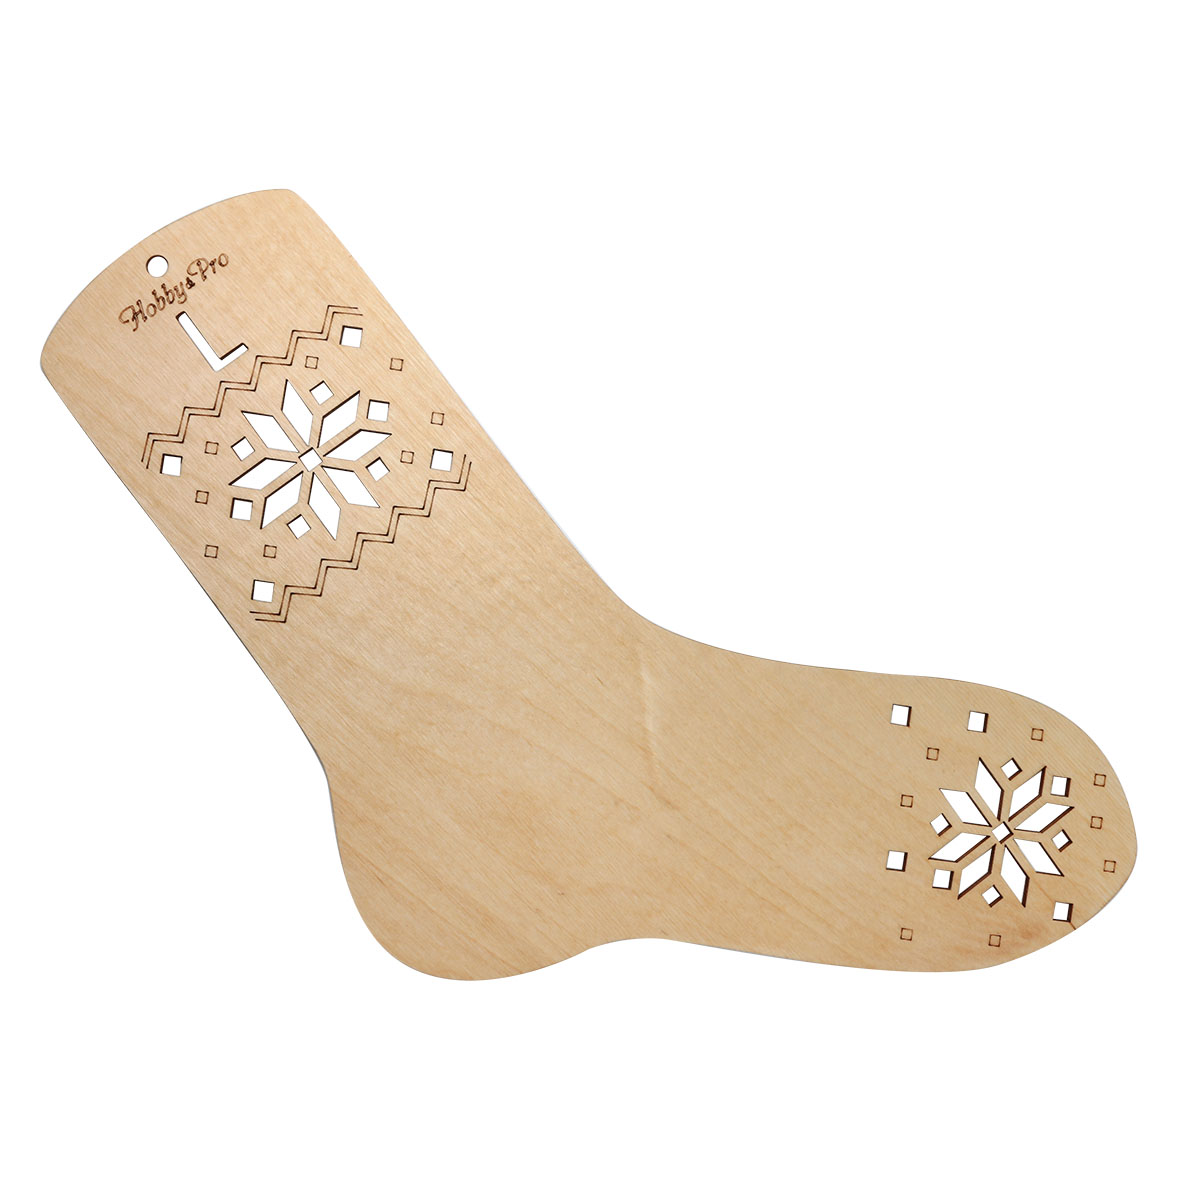 Нв-001 Blocker-pattern For Knitting Sock L (26 Cm On The Insole), Plywood Hobby & Pro